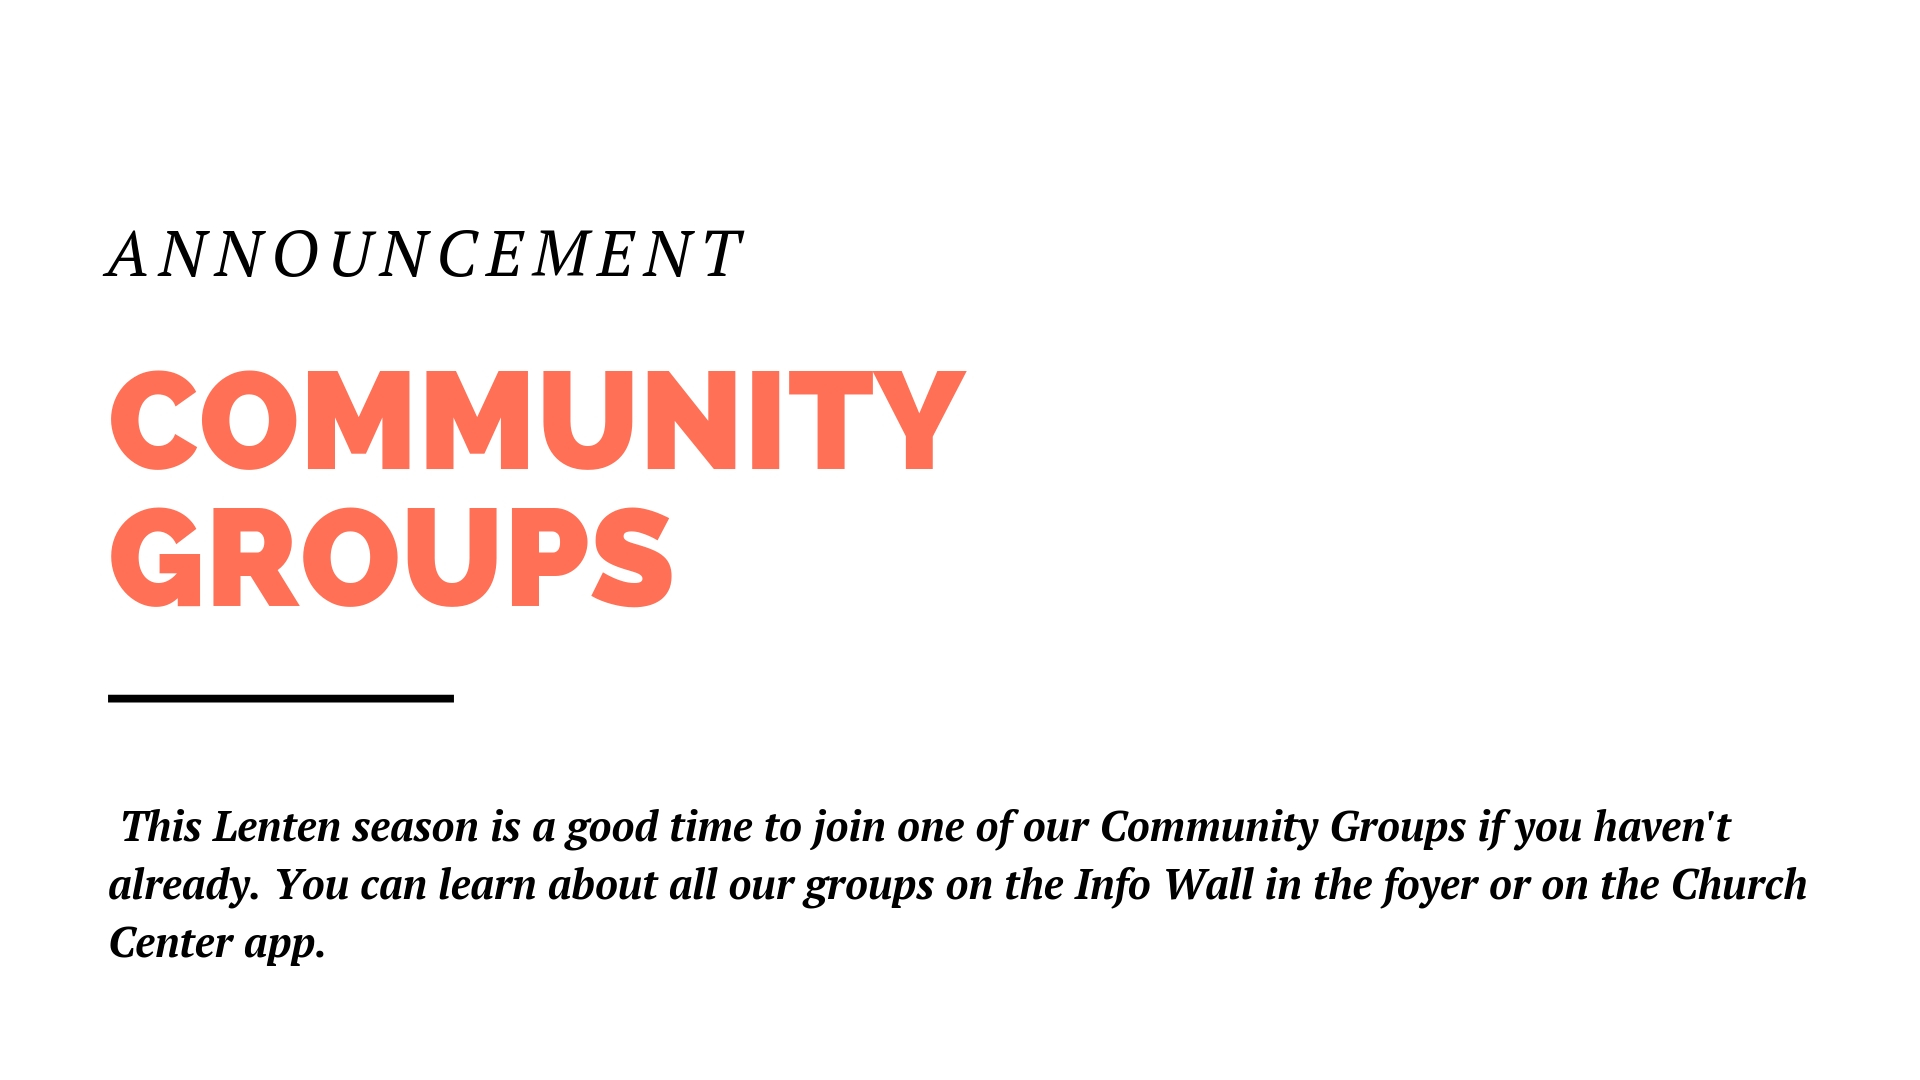 This Sunday will be the first Sunday of the Lenten season, which is a good time to think about joining a Community Group, if you haven't already. Community Groups are a place to be known, to be cared for, to live out faith together. You can learn about all our groups on the Info Wall in the foyer or on the Church Center app.